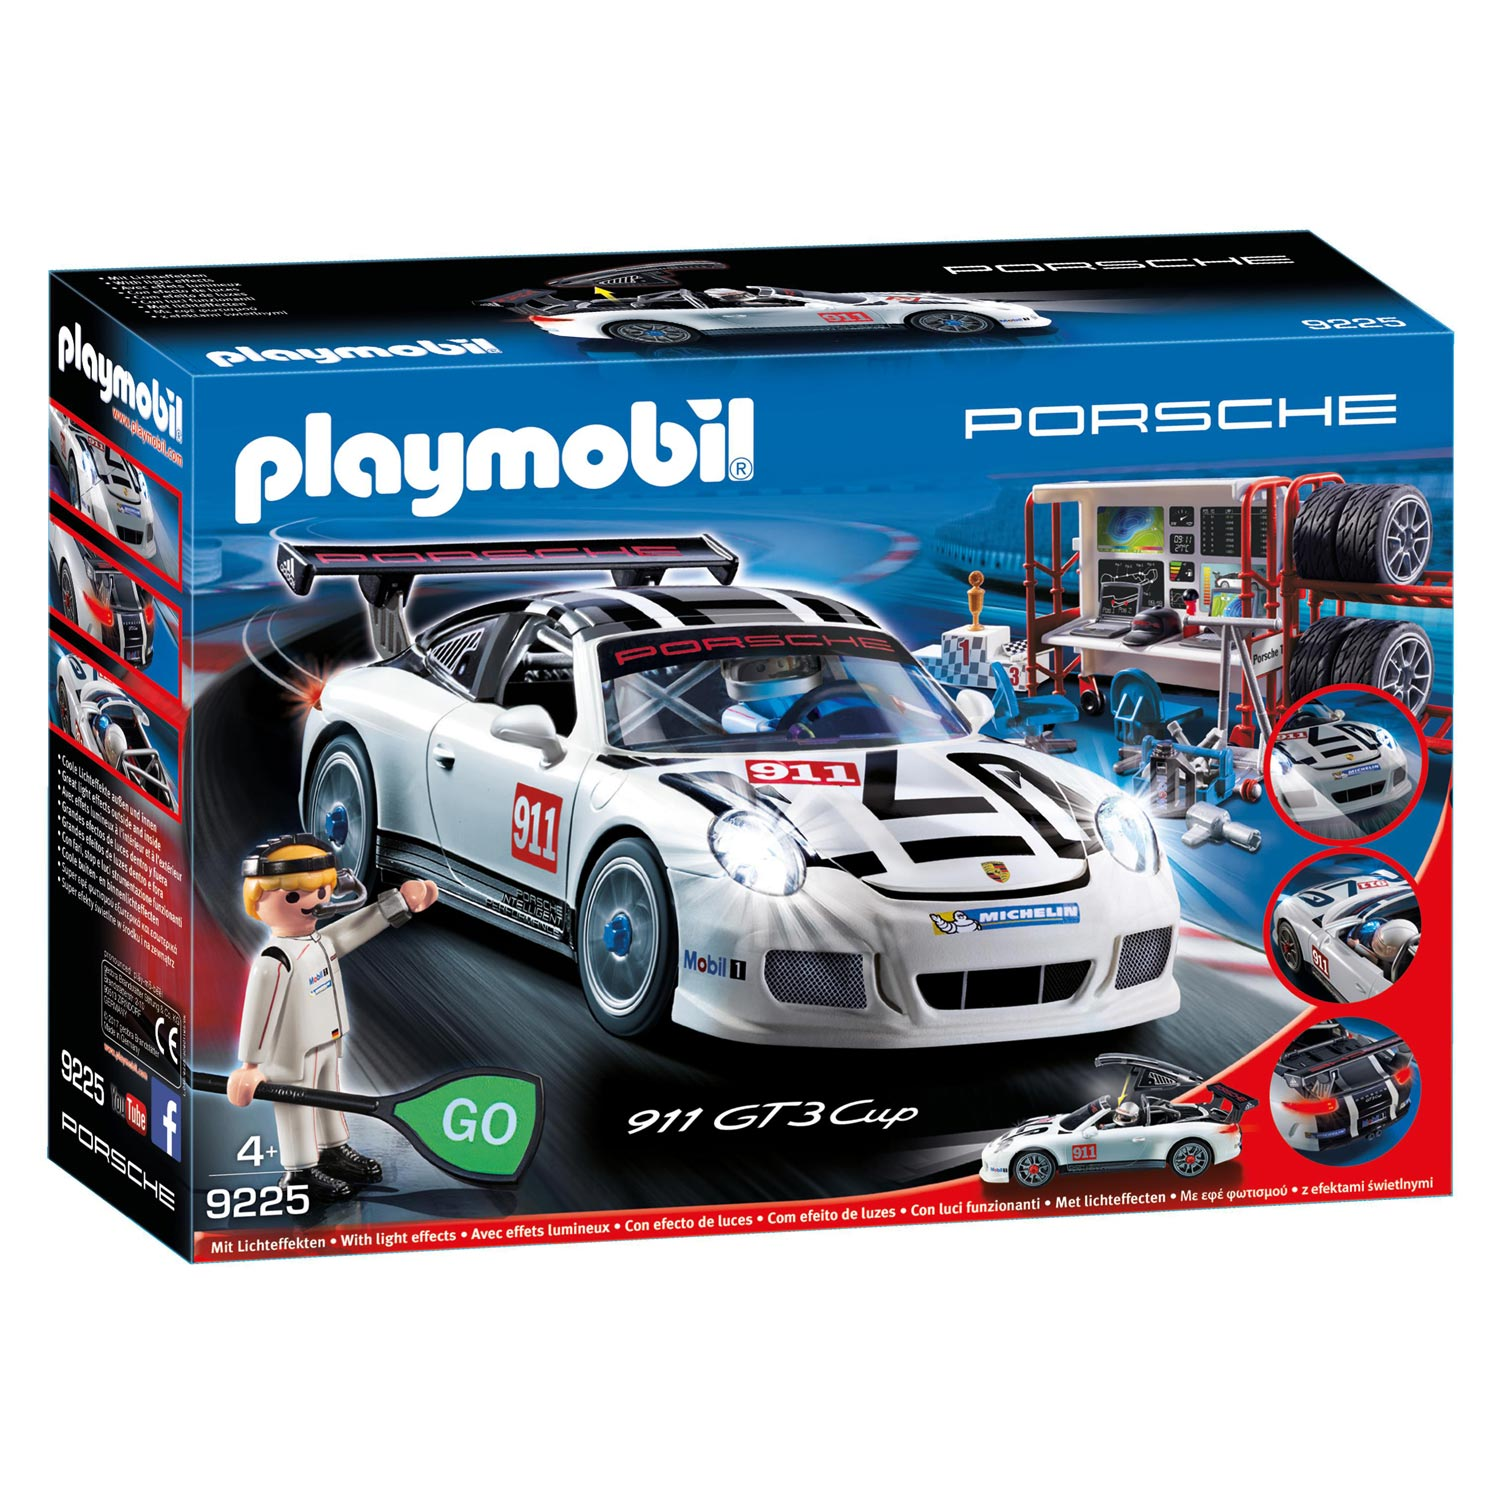 playmobil 9225 porsche 911 gt3 cup thimble toys. Black Bedroom Furniture Sets. Home Design Ideas